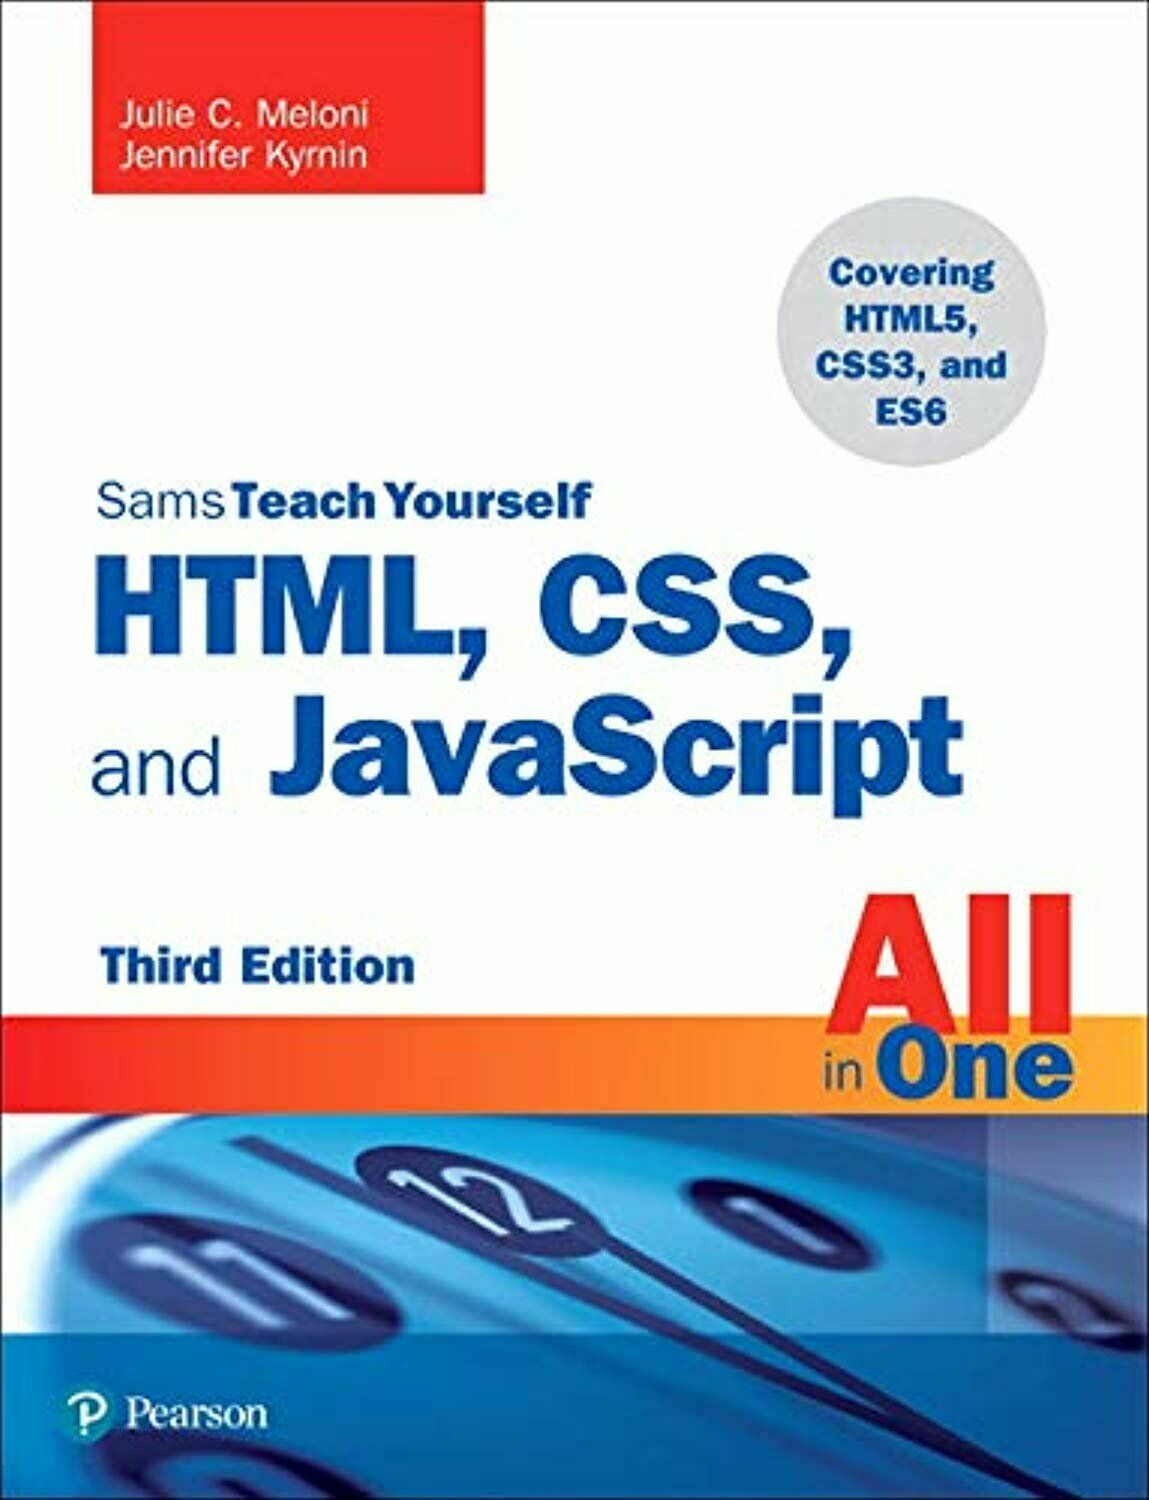 HTML, CSS, and JavaScript All in One, Sams Teach Yourself (3rd Edition) |